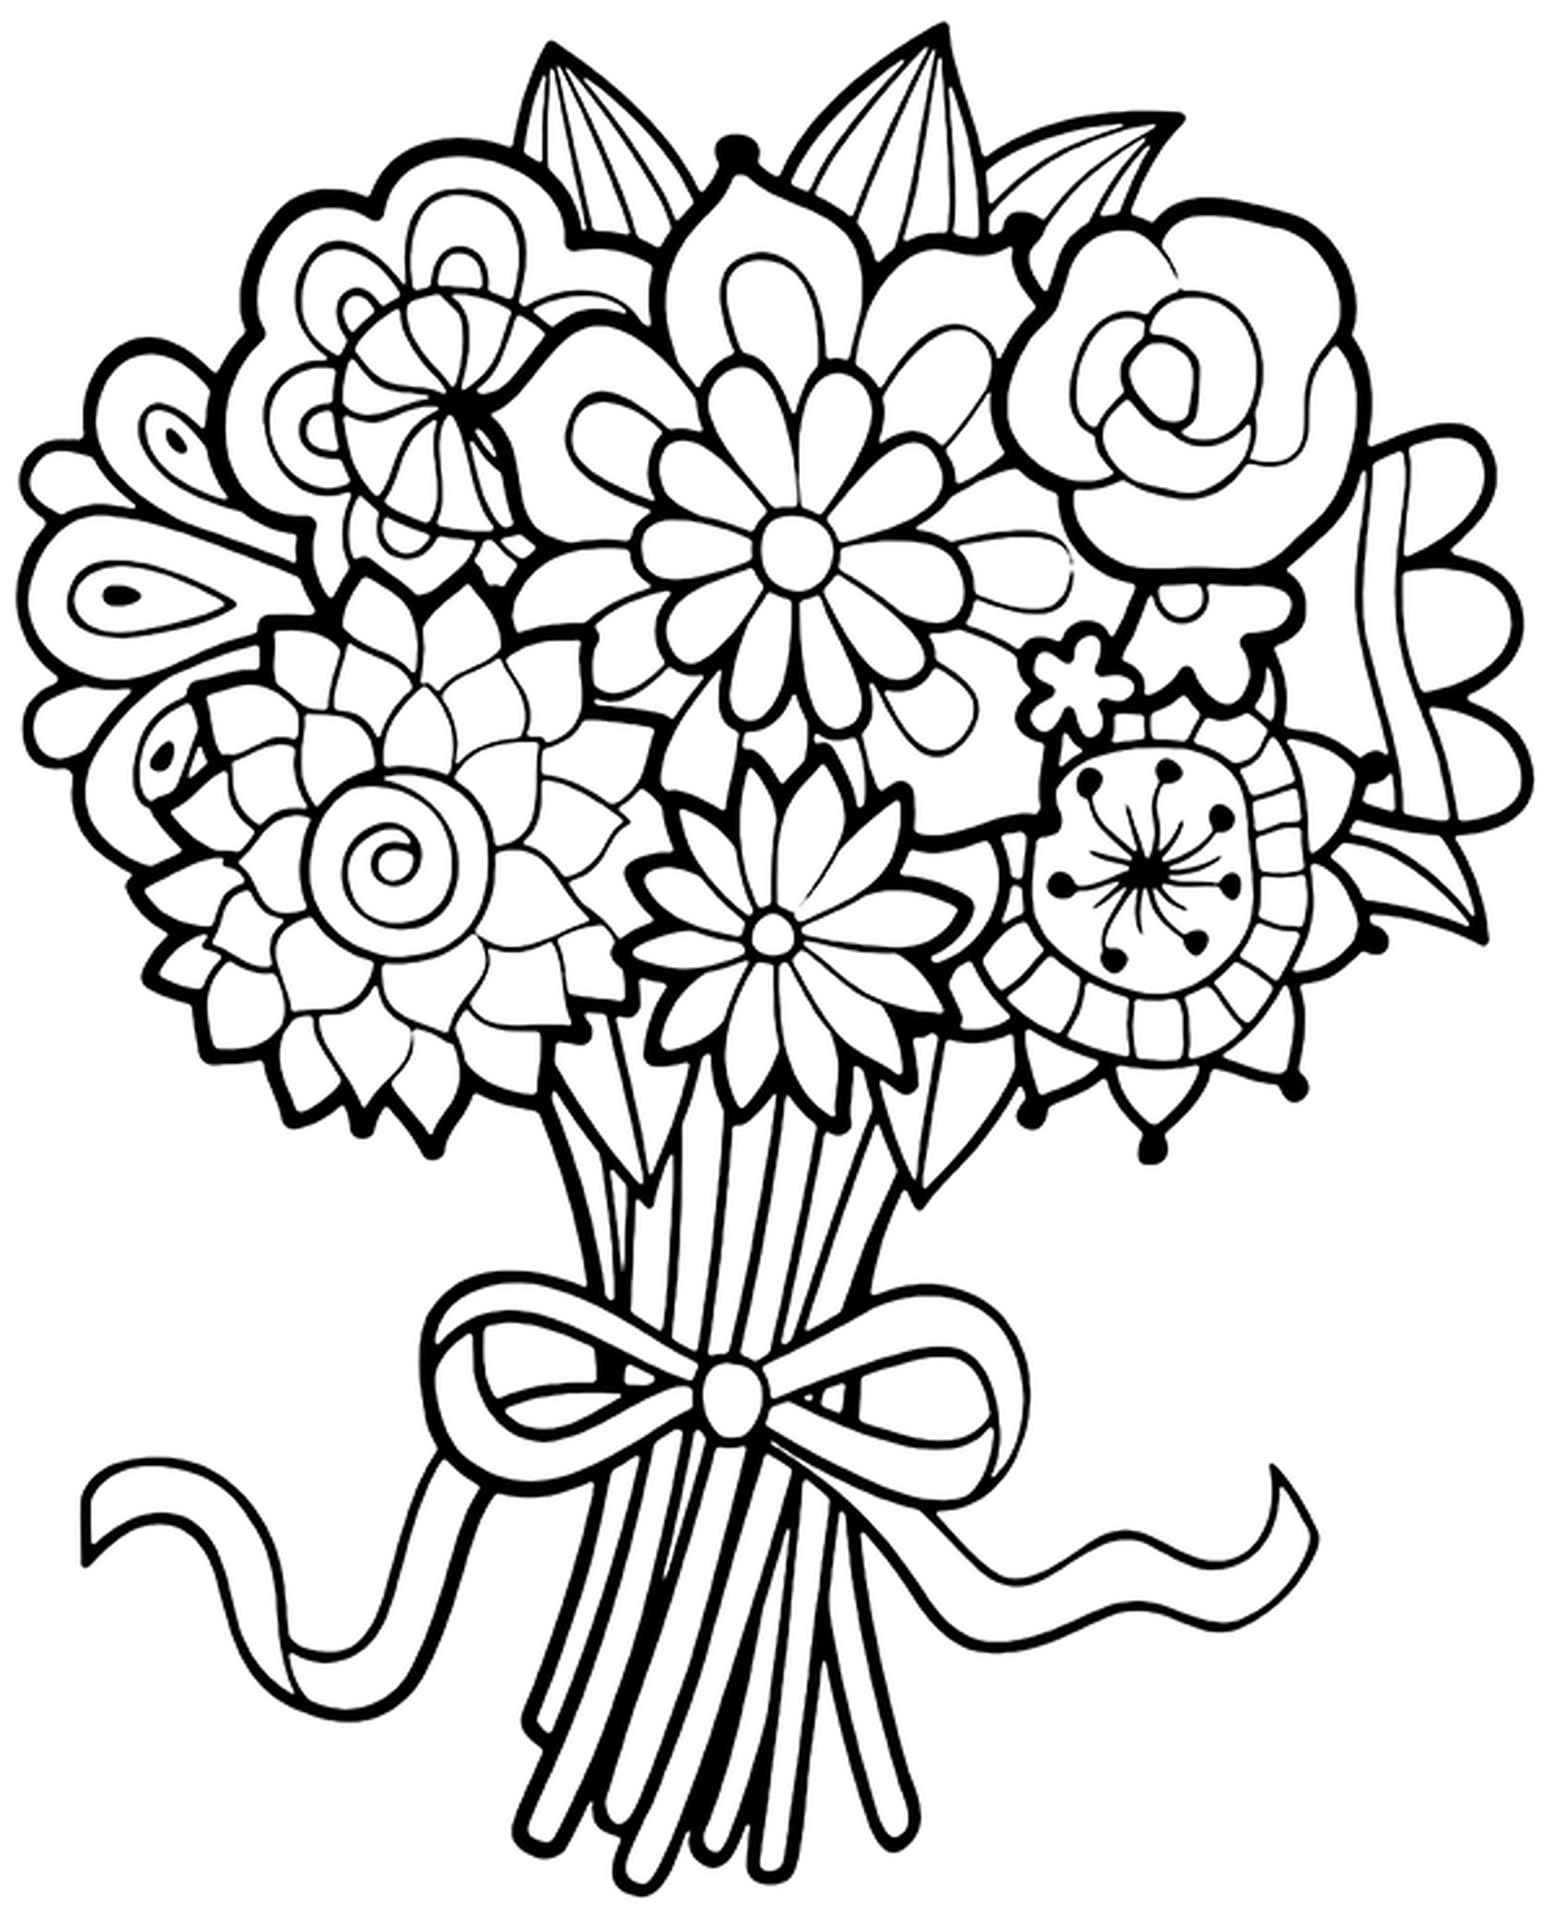 Coloring Page Of French Bouquet Of Flowers